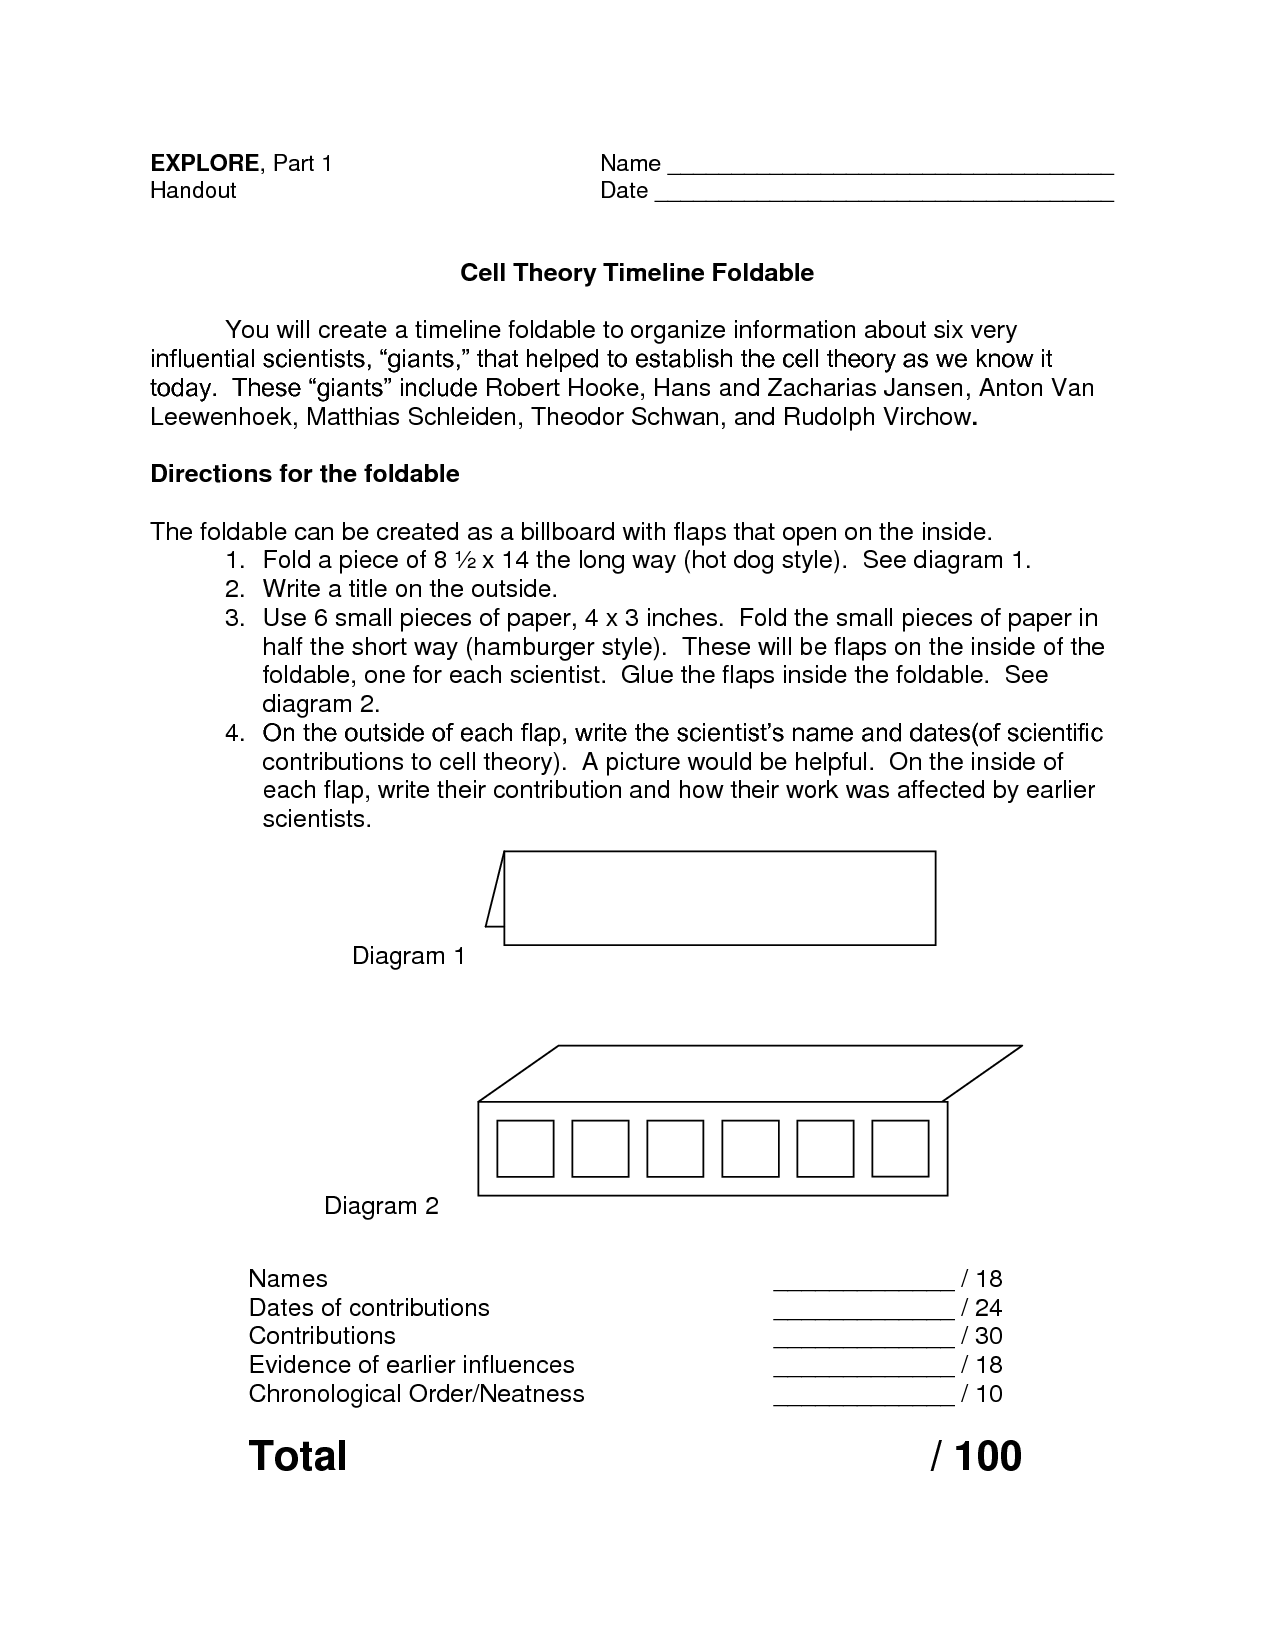 foldables for science cell theory timeline foldable cells pinterest science timeline. Black Bedroom Furniture Sets. Home Design Ideas